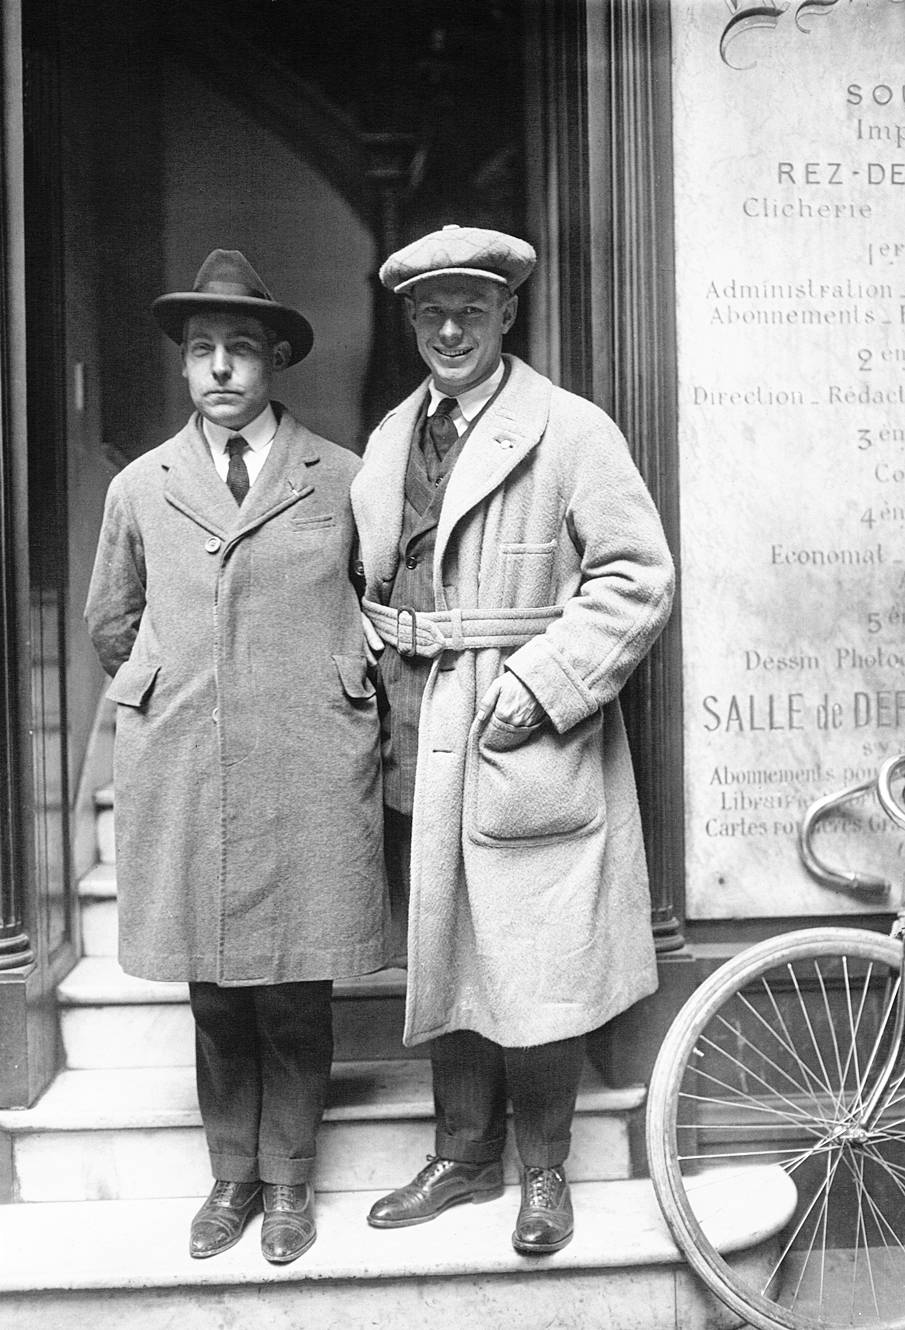 Charley with unknown man (1923)